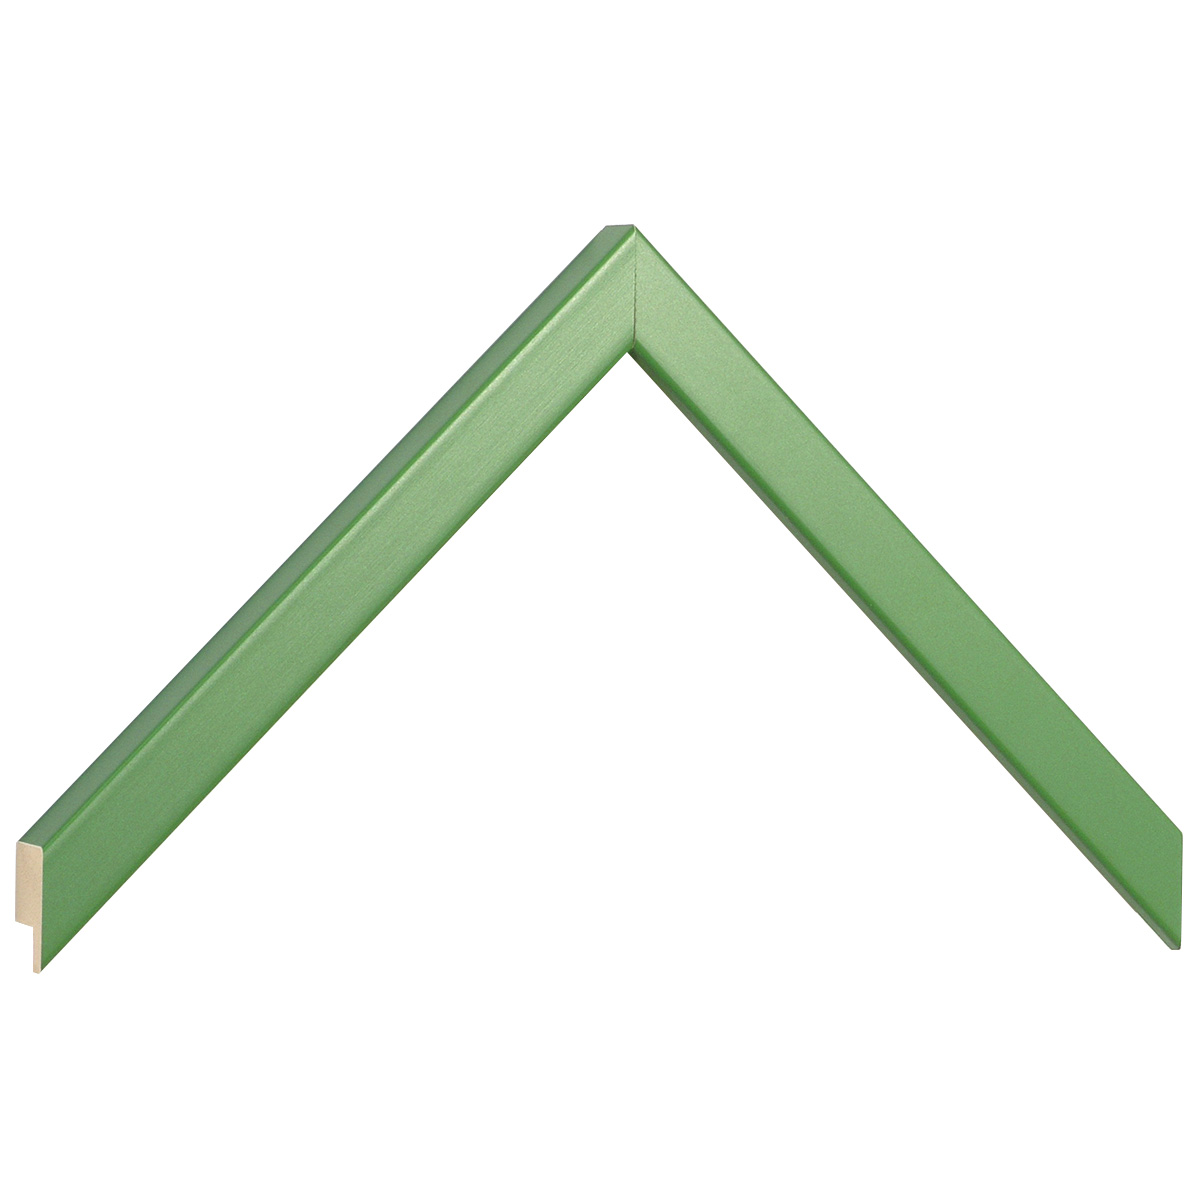 Moulding ayous width 15mm height 14 - green